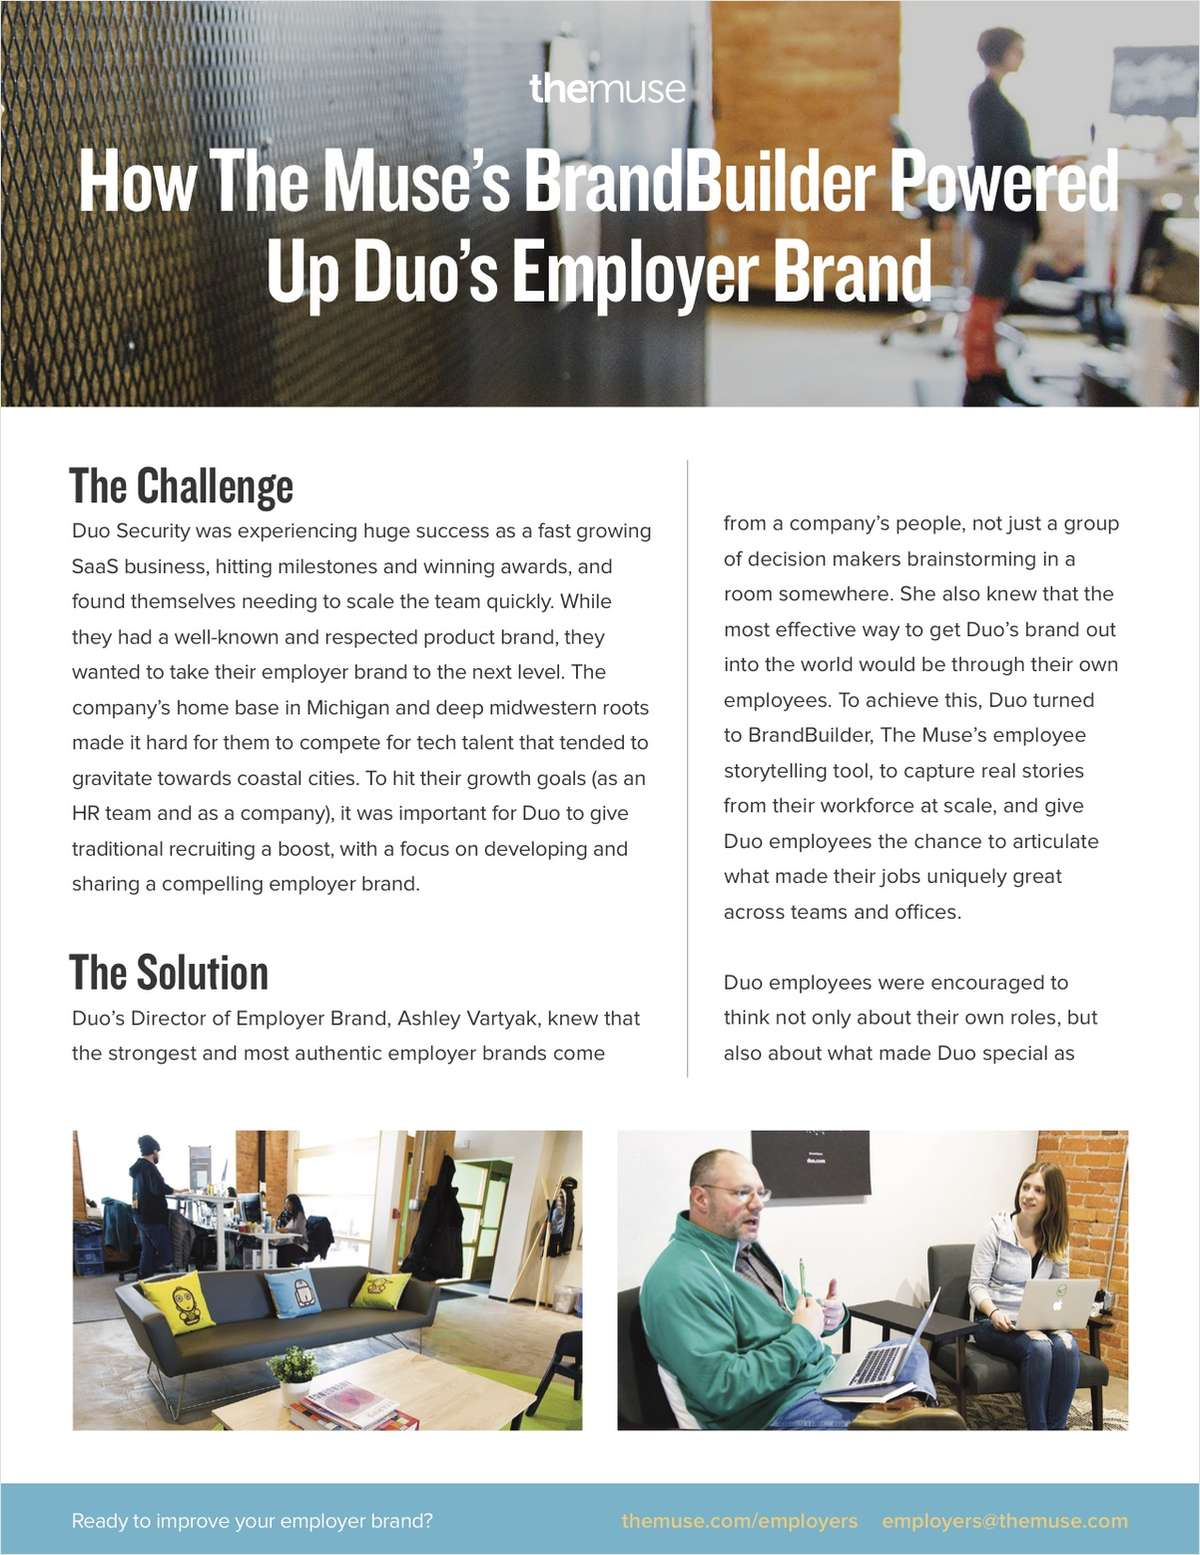 How BrandBuilder by The Muse Powered Up Duo's Employer Brand